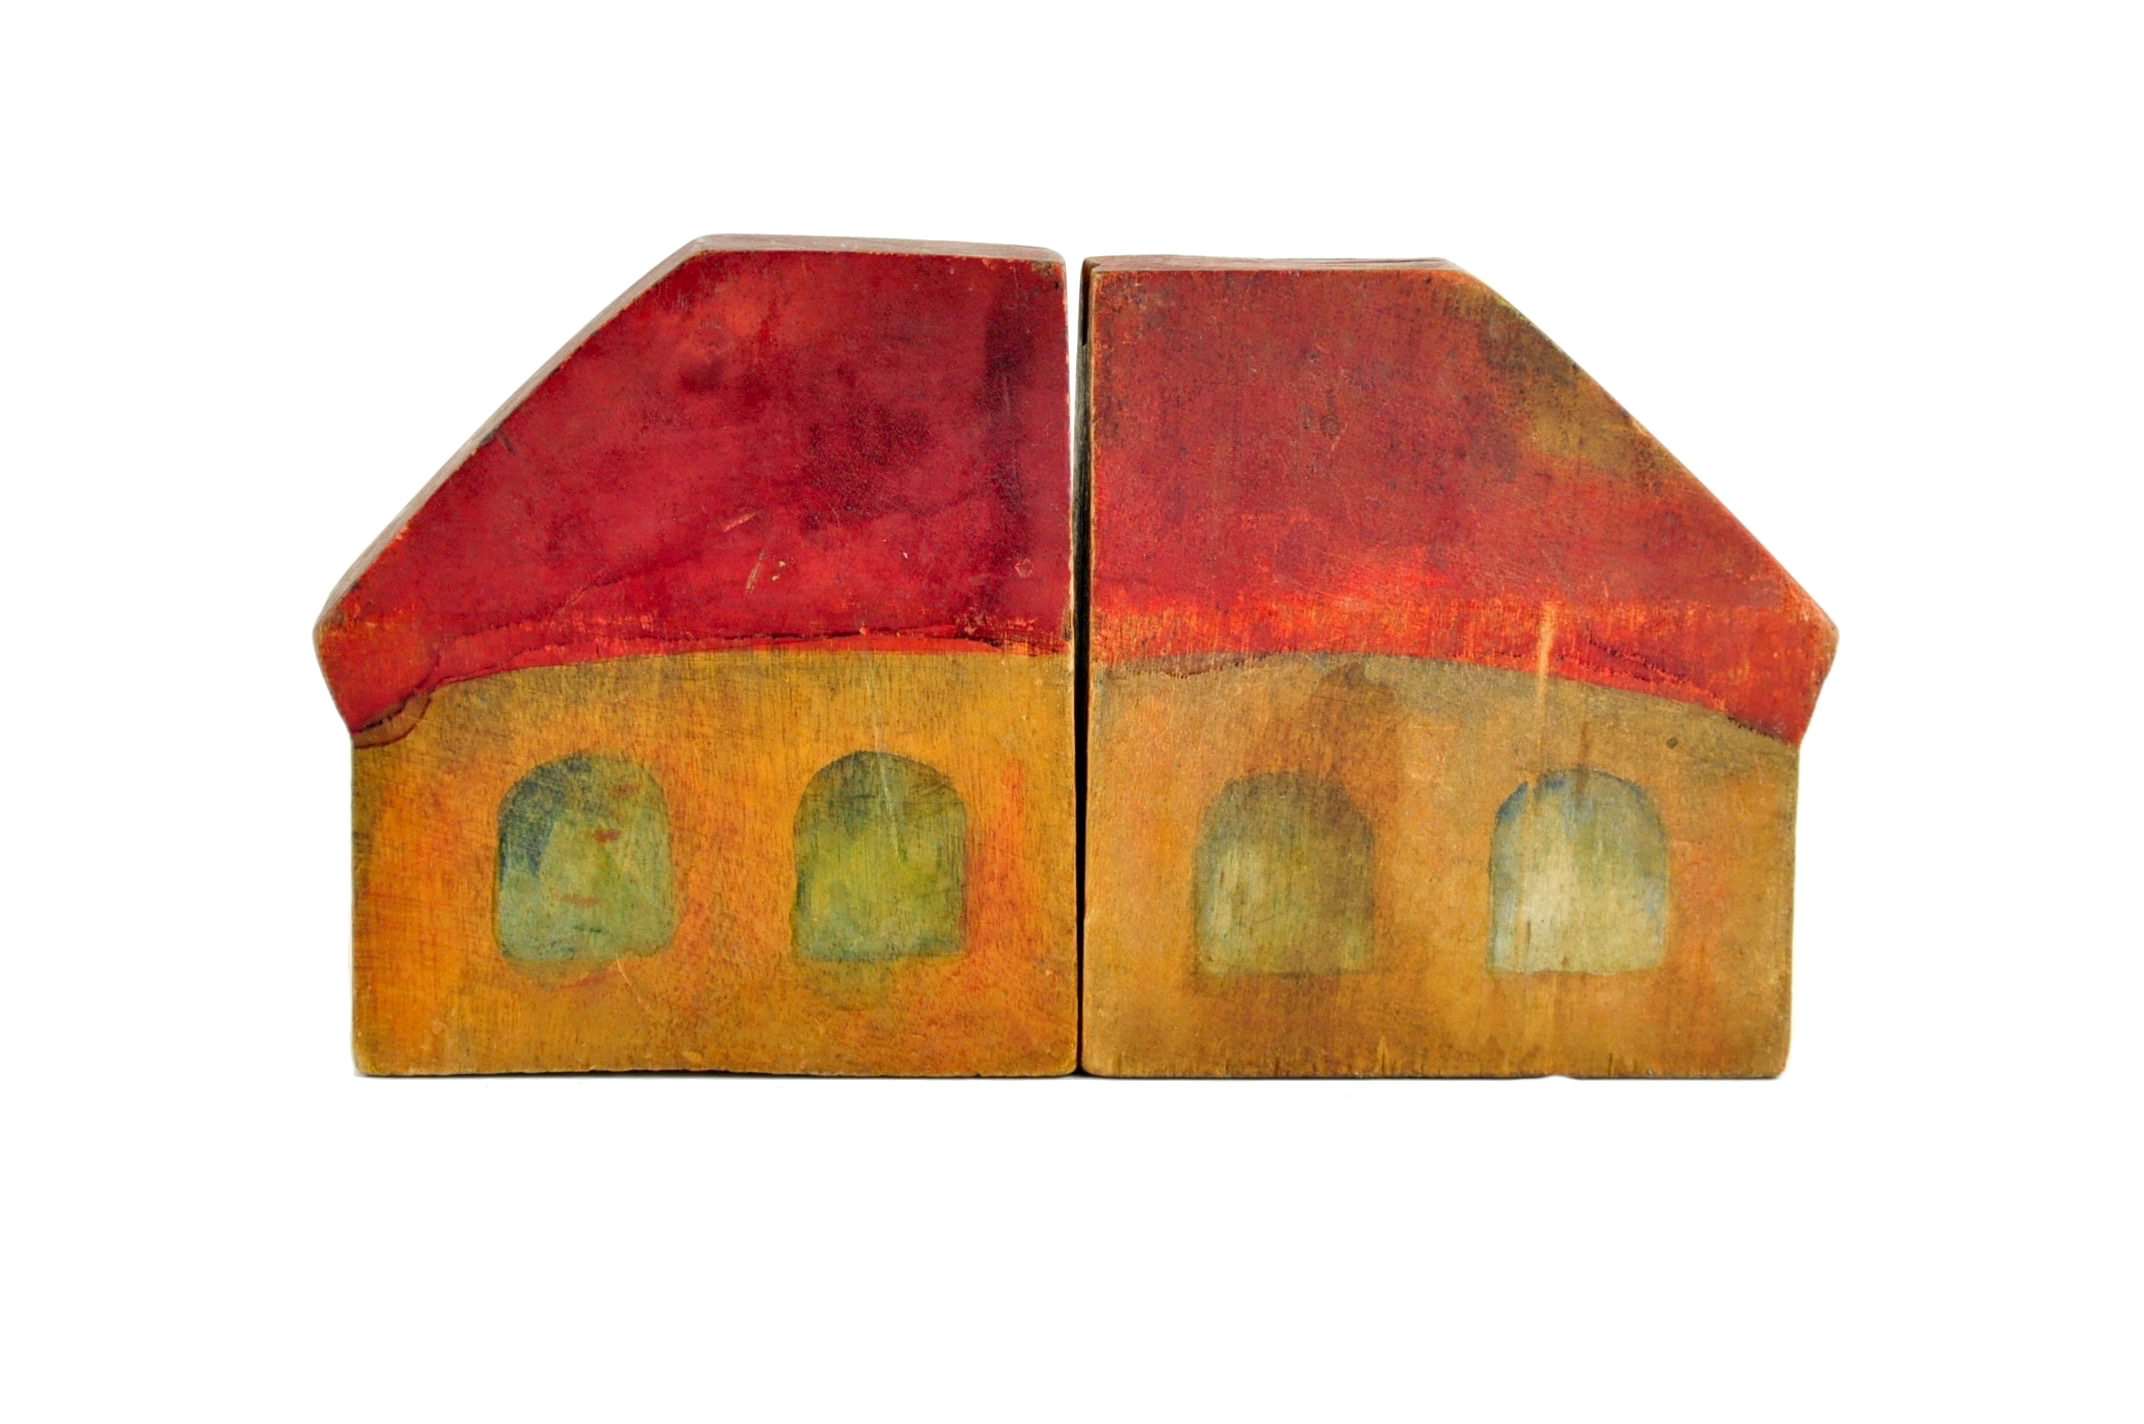 Wooden Toy House Image